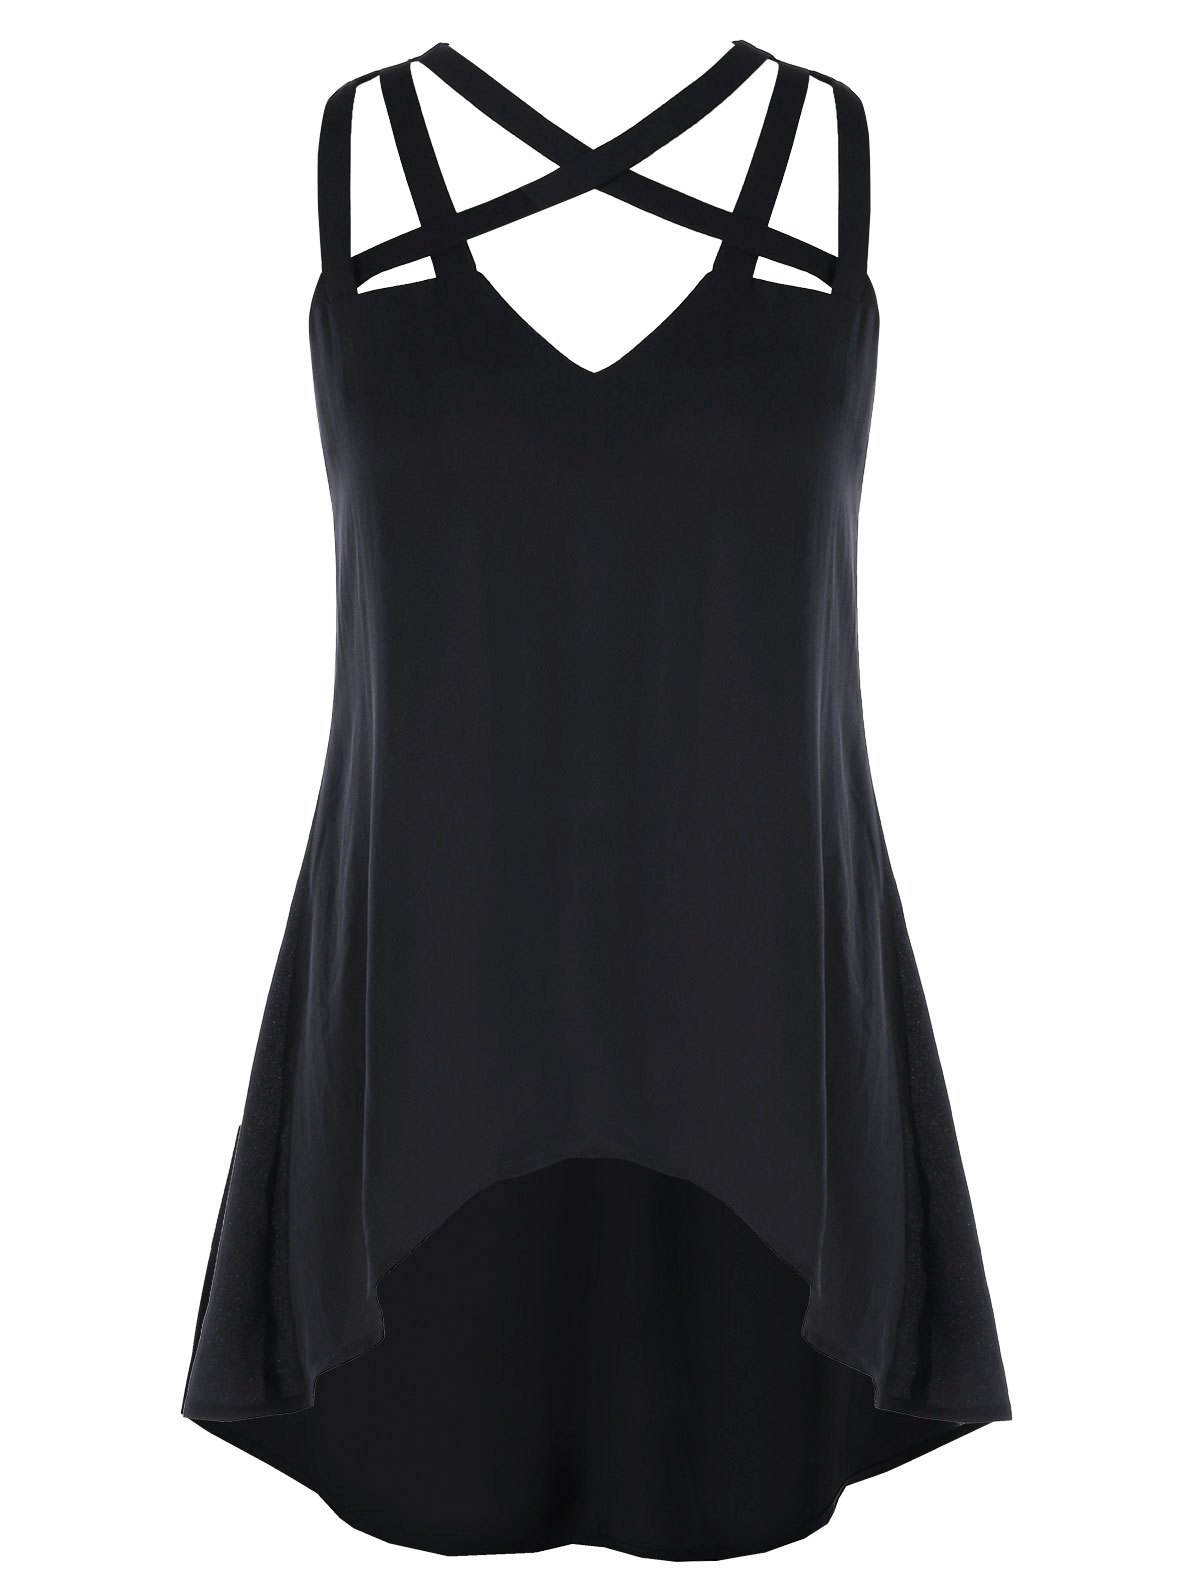 Strappy Cut High Low Tank Top - BLACK 2XL